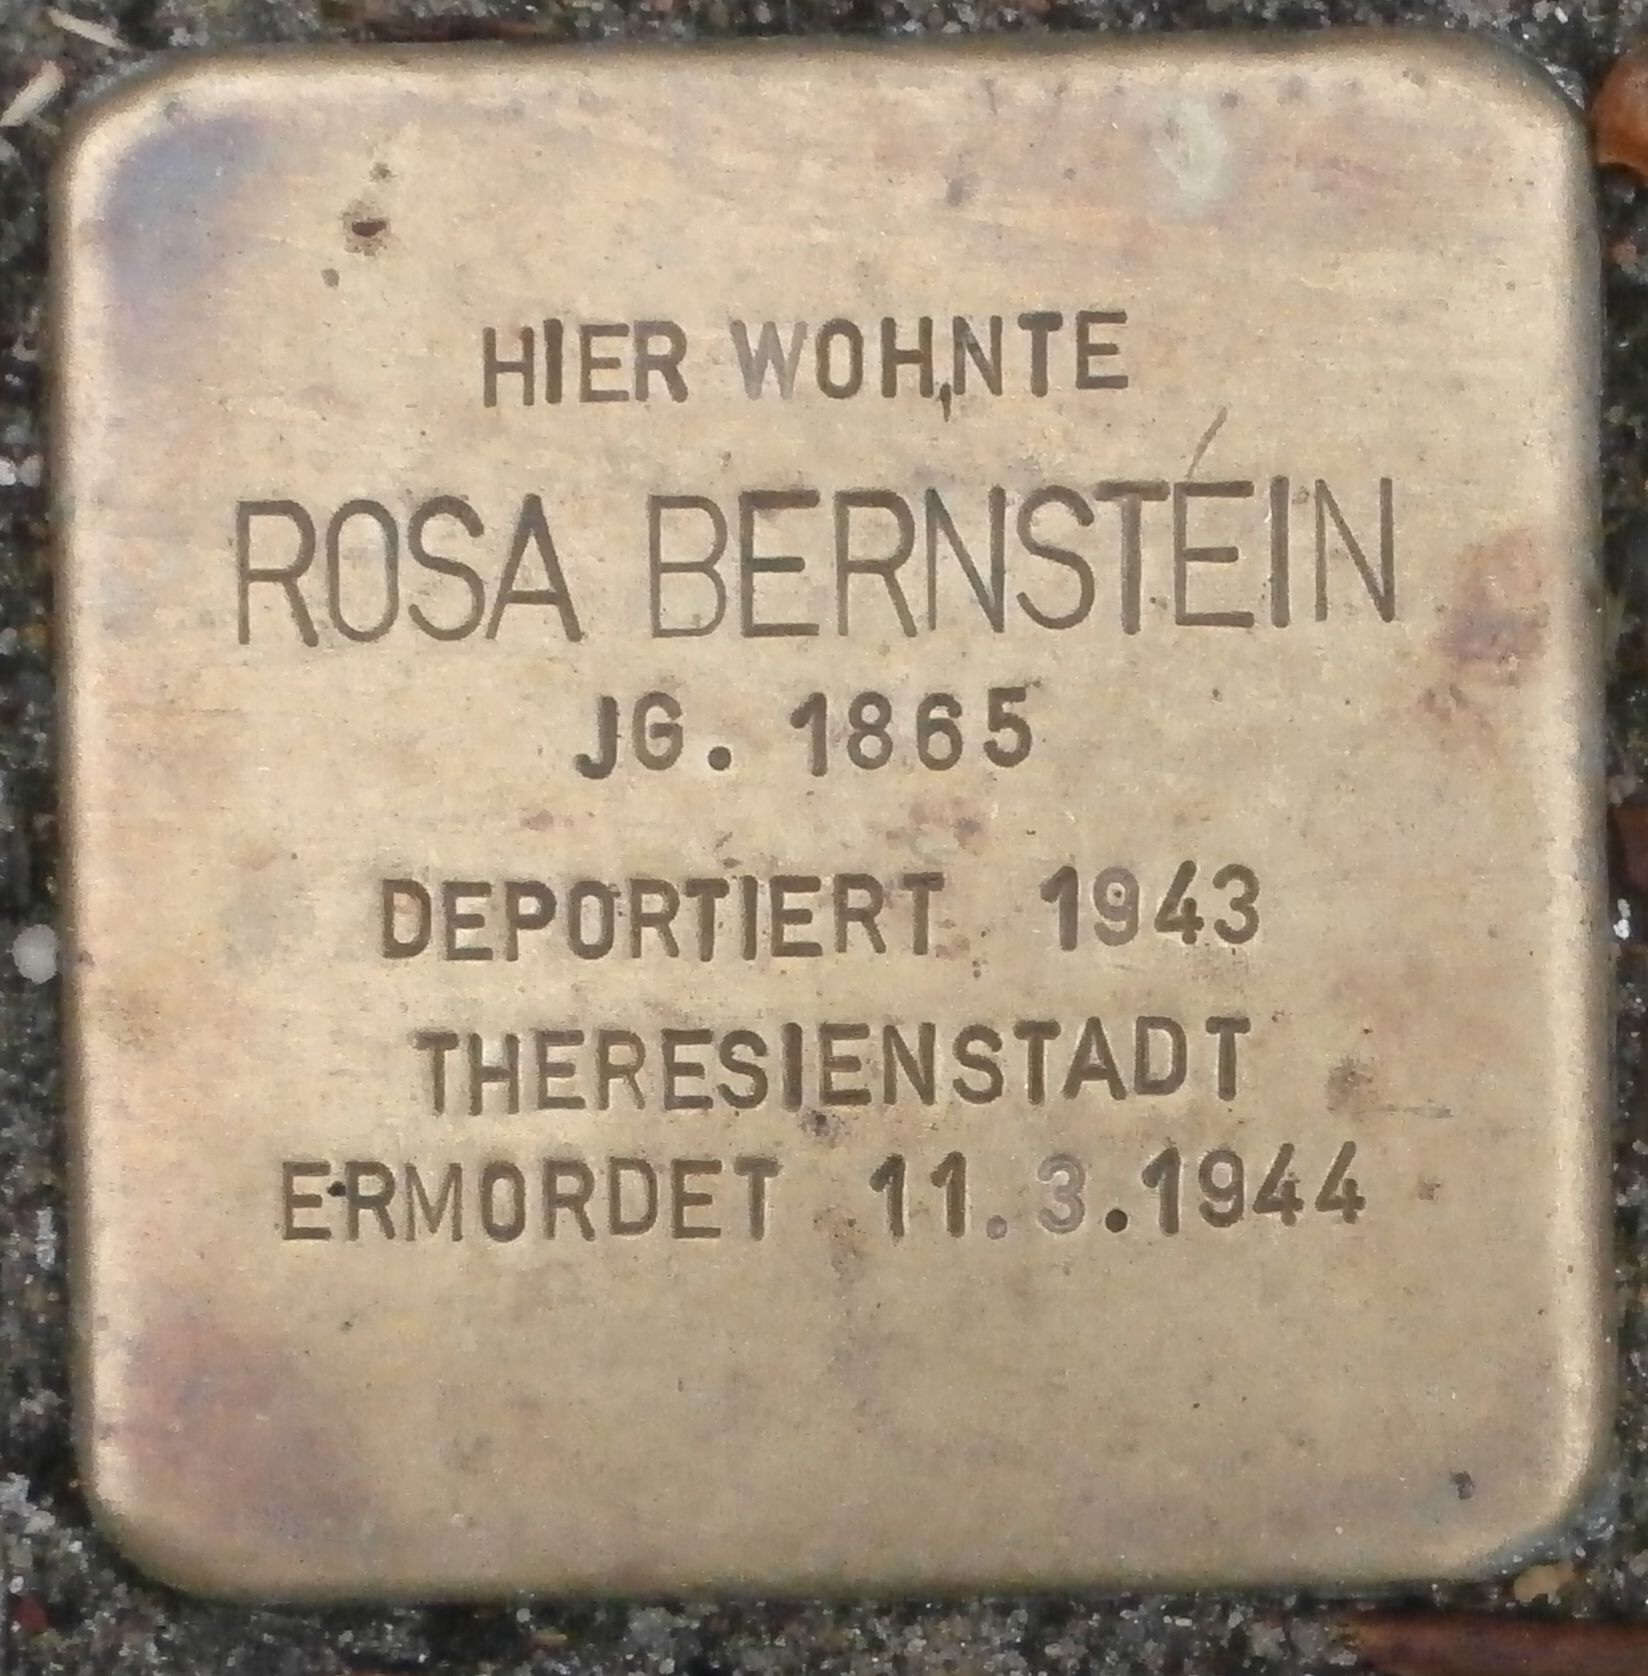 datei stolperstein simon von utrecht stra e 4a ii in hamburg st pauli jpg wikipedia. Black Bedroom Furniture Sets. Home Design Ideas